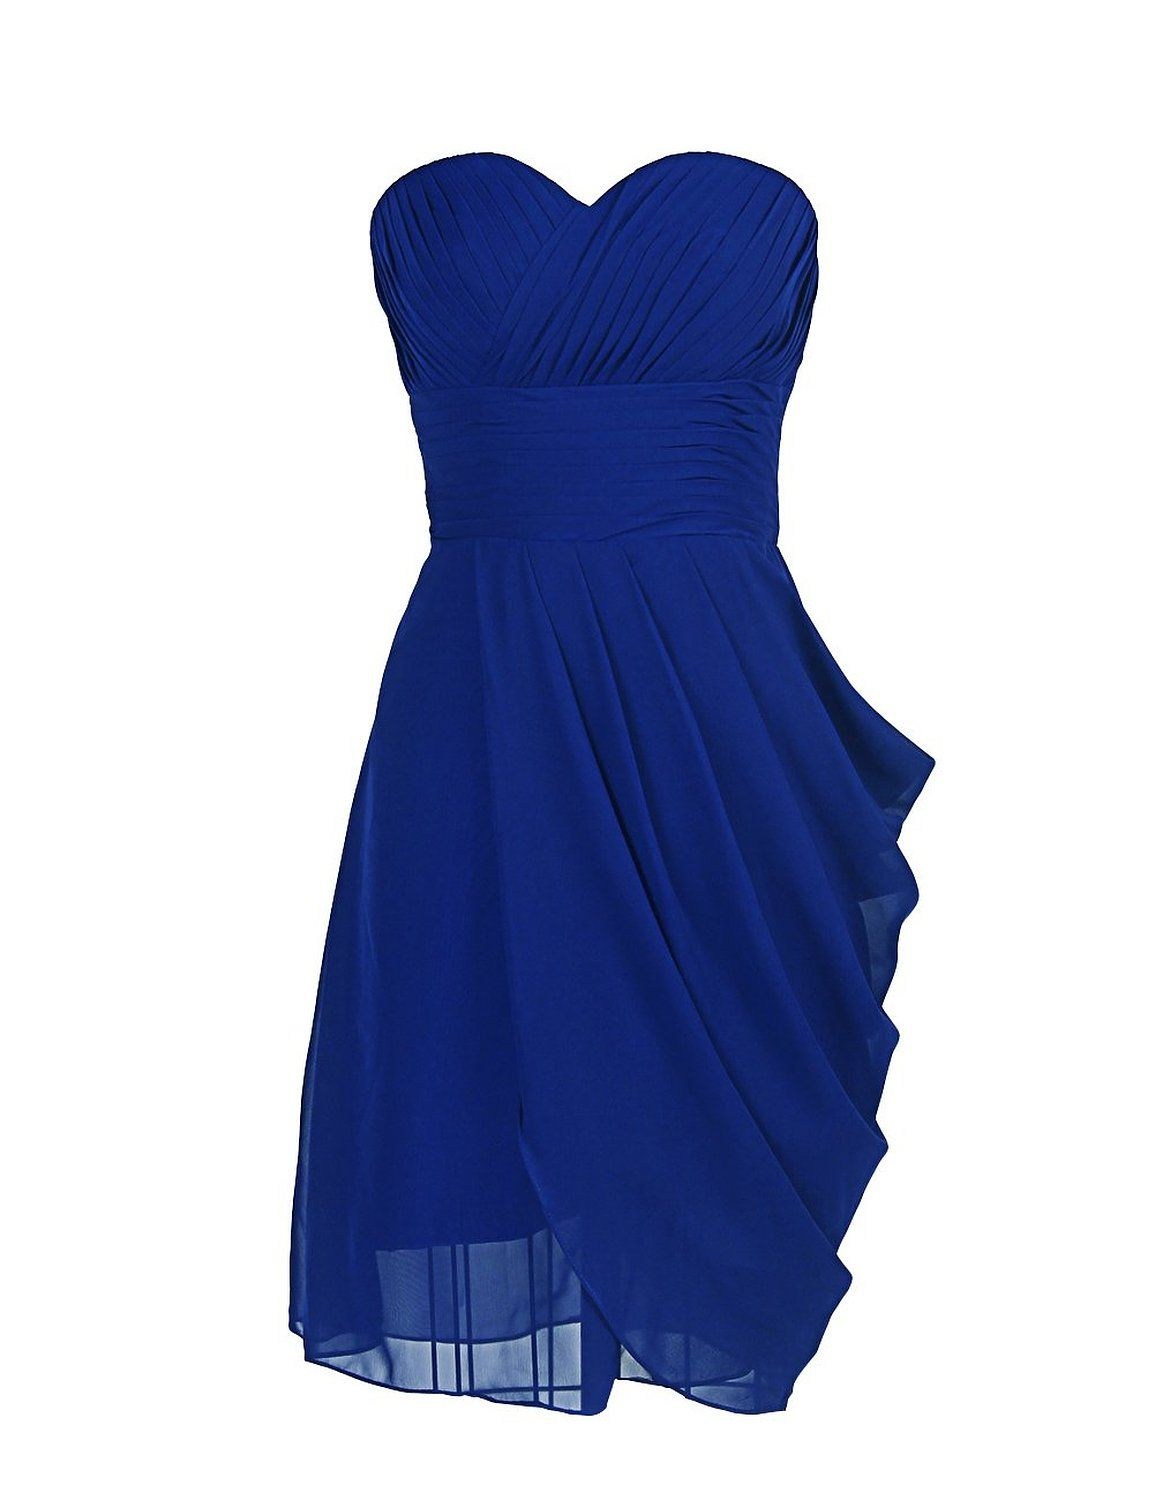 Dressystar short royal blue bridesmaid dresses women 39 s for Royal blue short wedding dresses